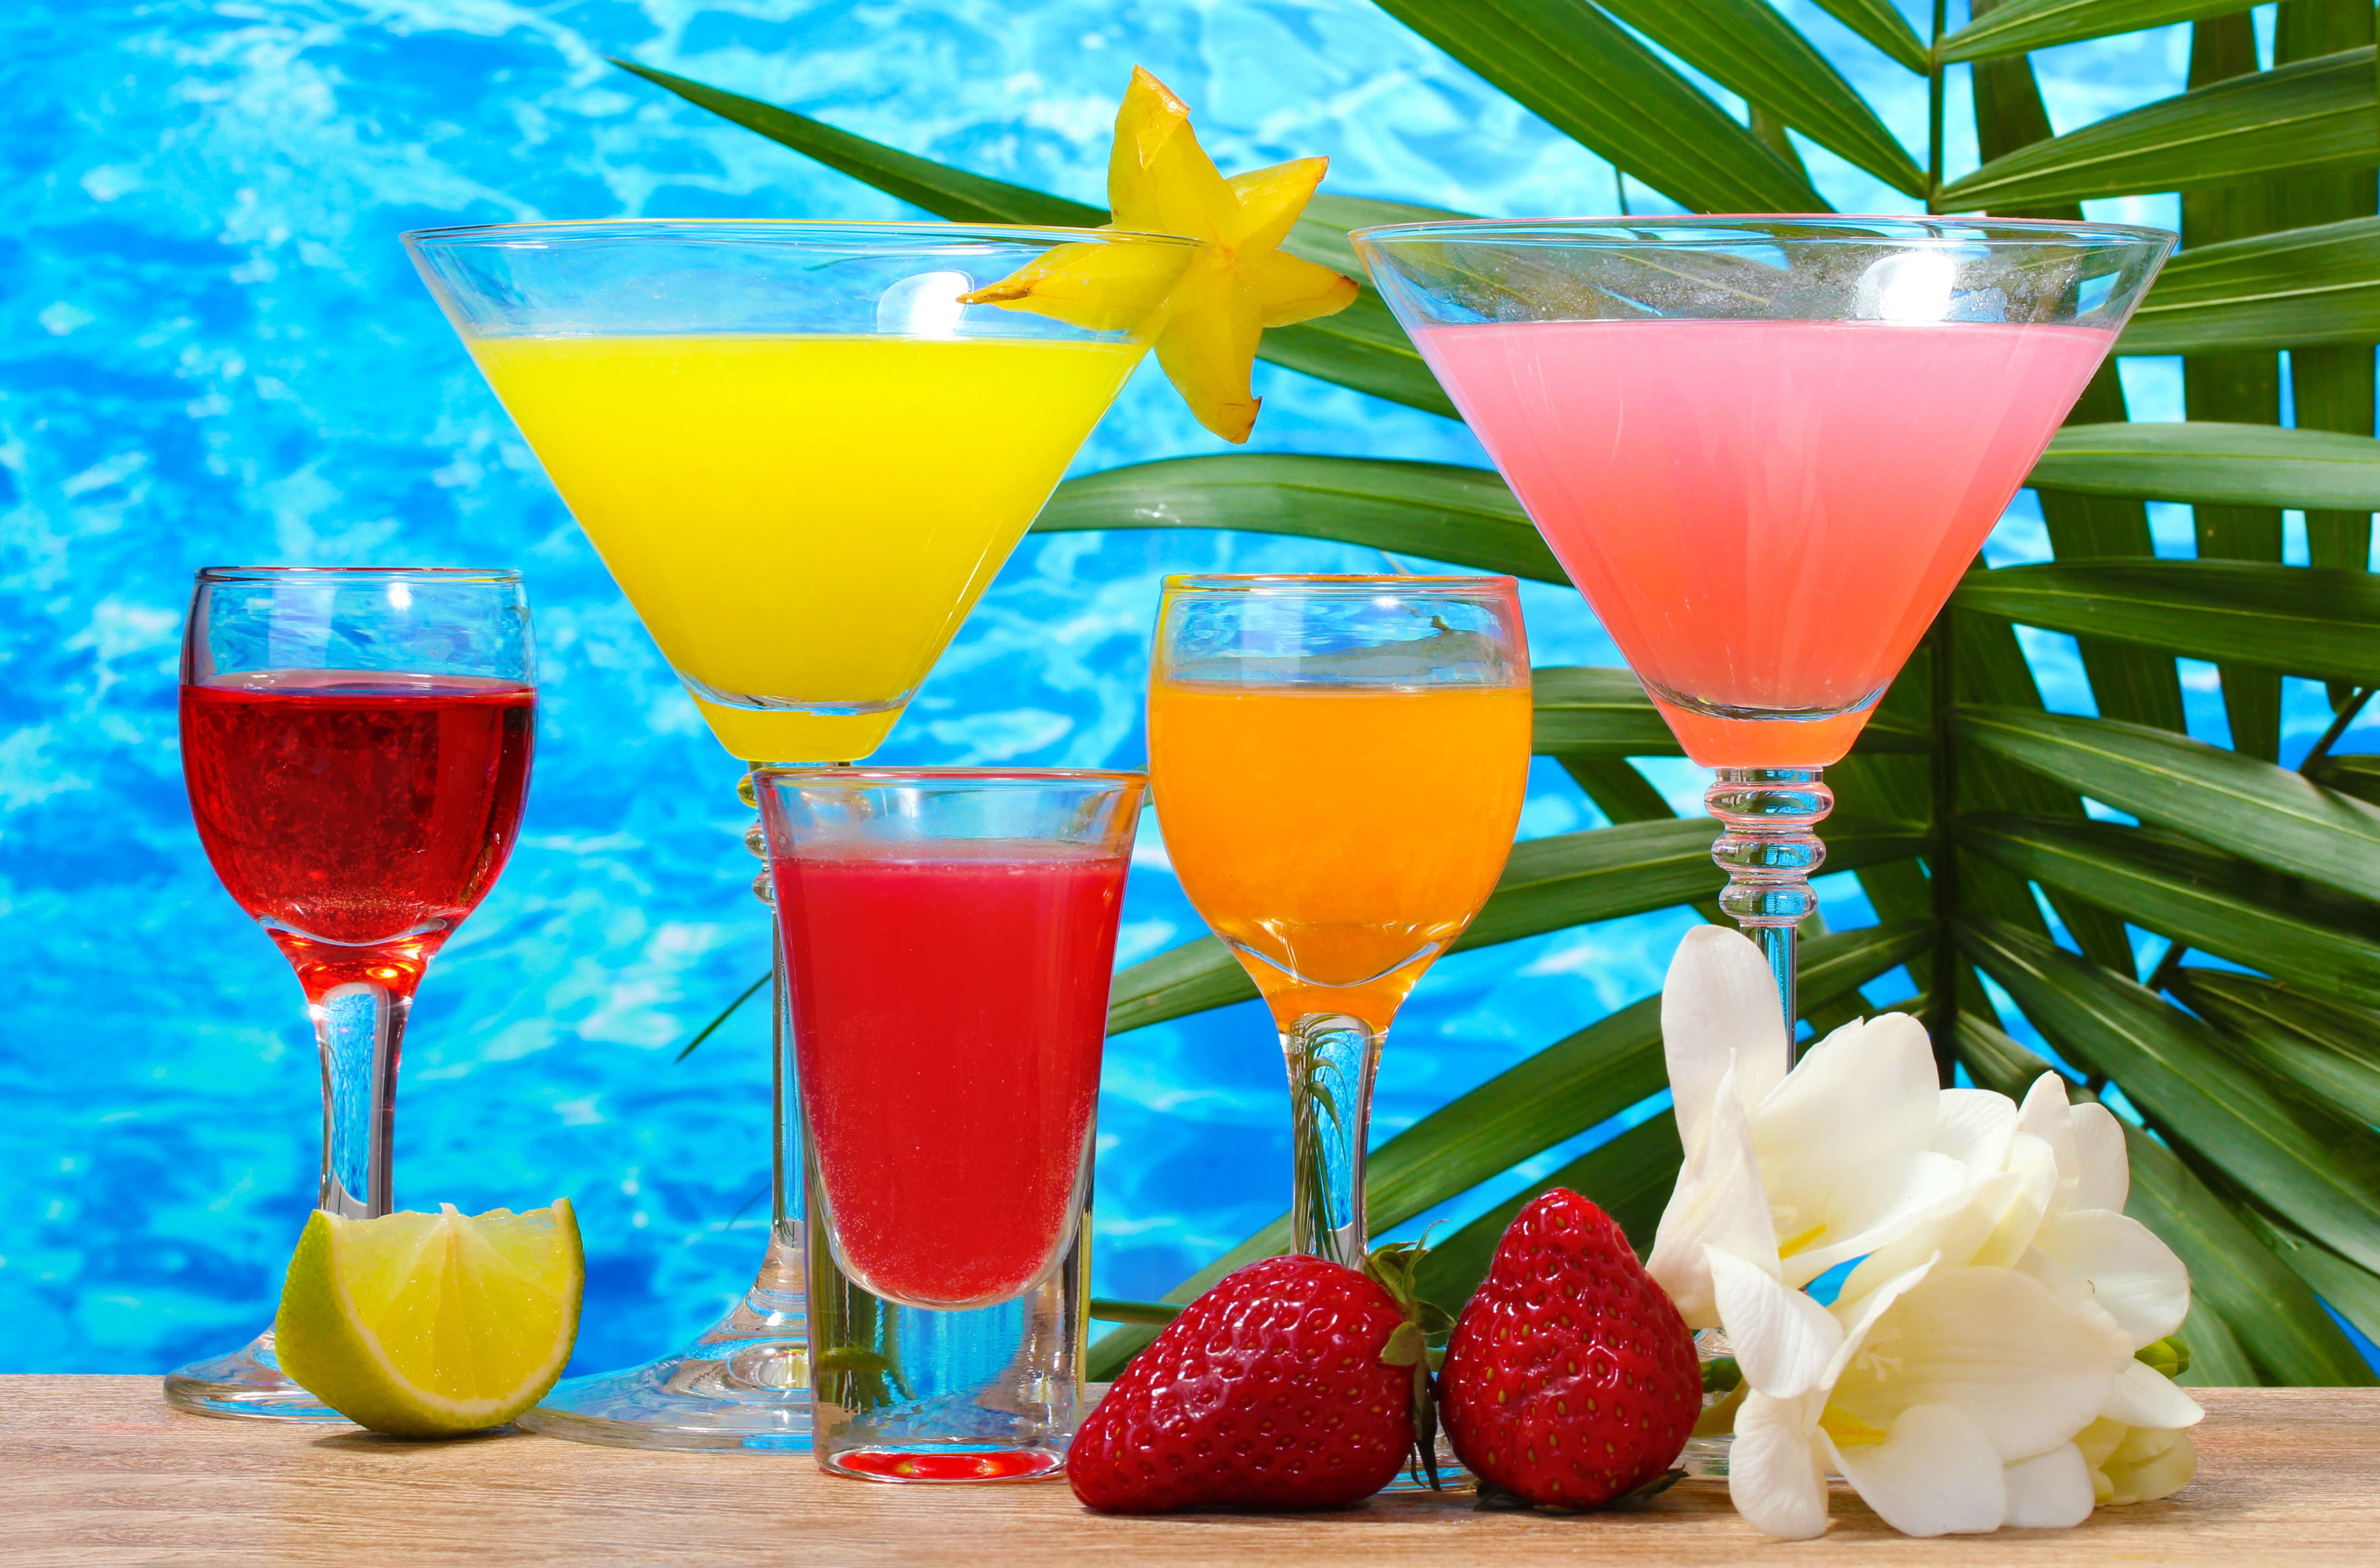 Tropical Cocktail Wallpapers, Pictures, Images